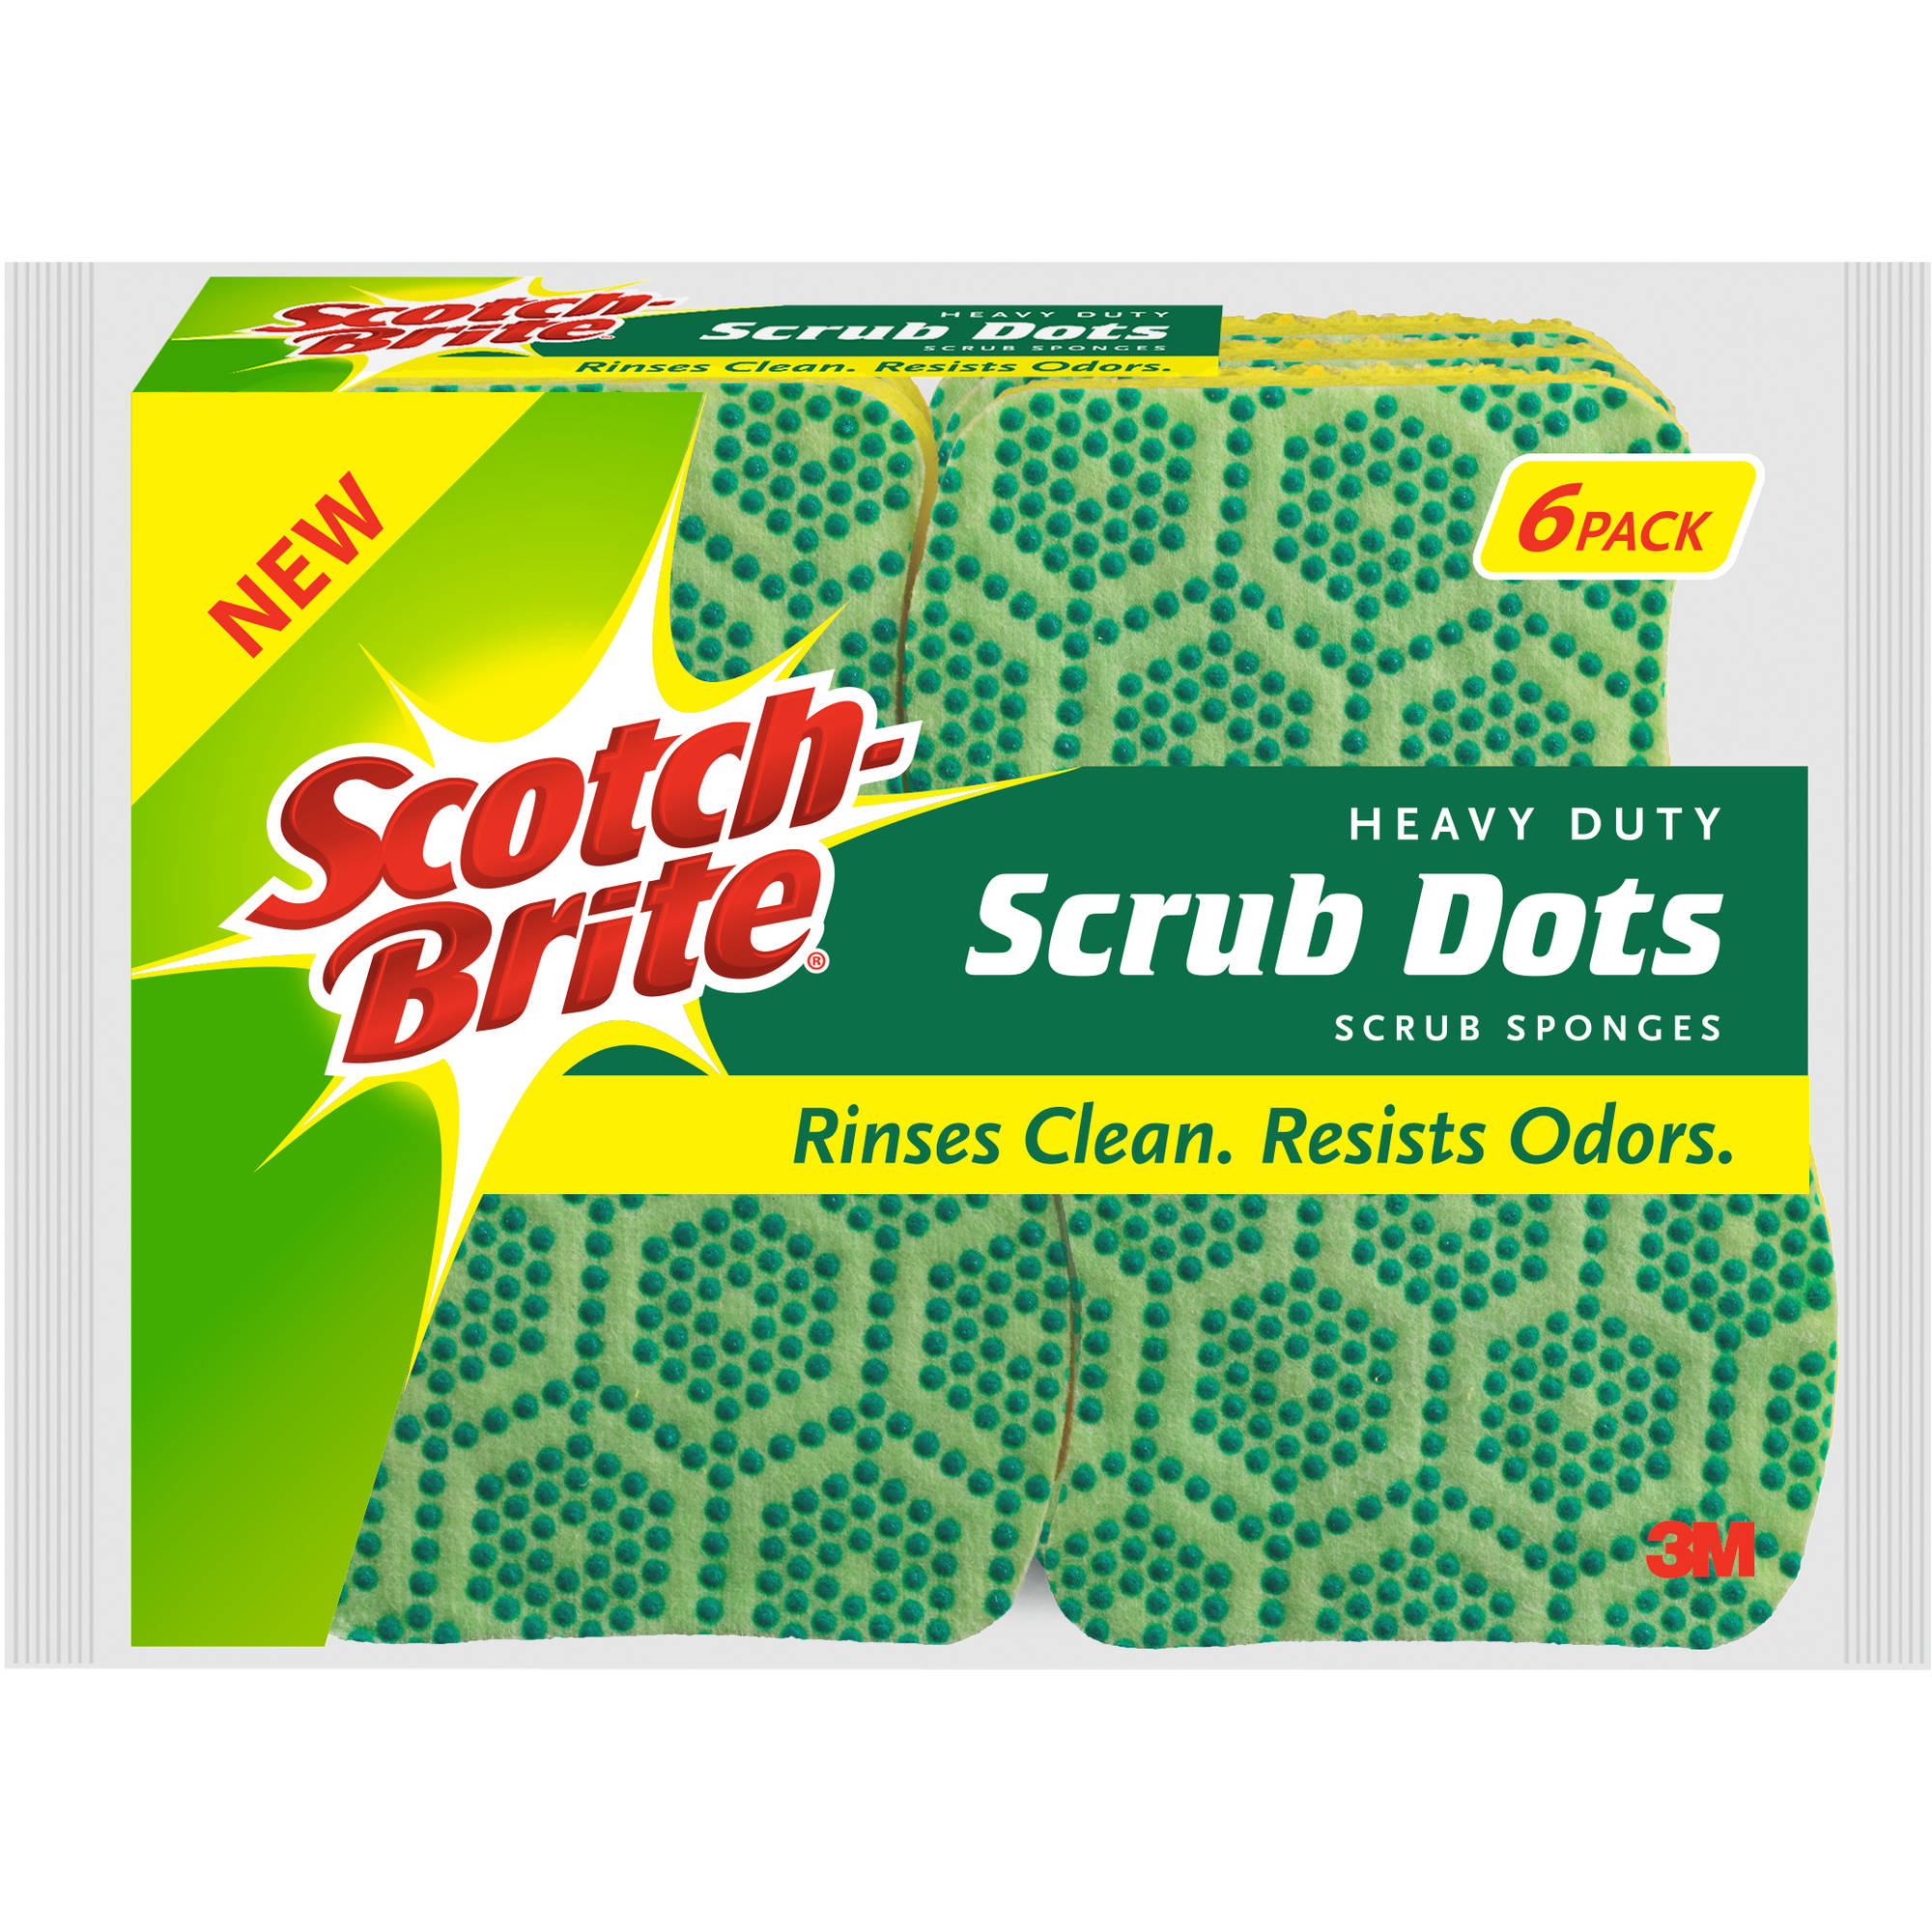 Scotch-Brite Scrub Dots Heavy Duty Scrub Sponge, 6 Pack